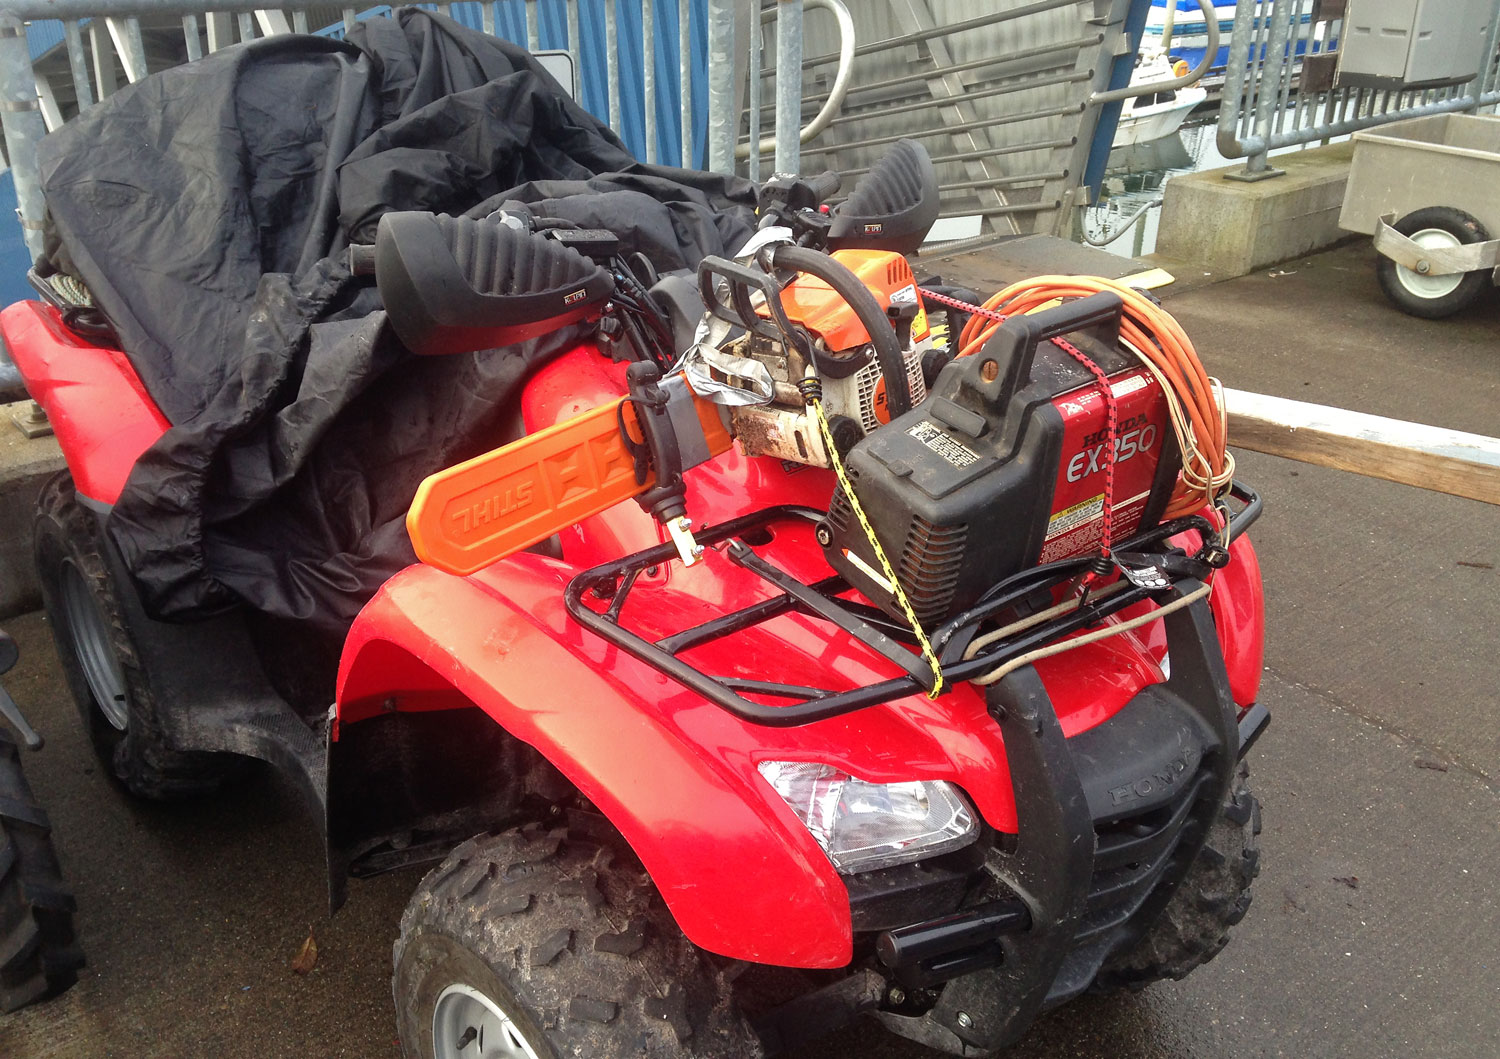 Four wheeler ATV with chainsaw and generator